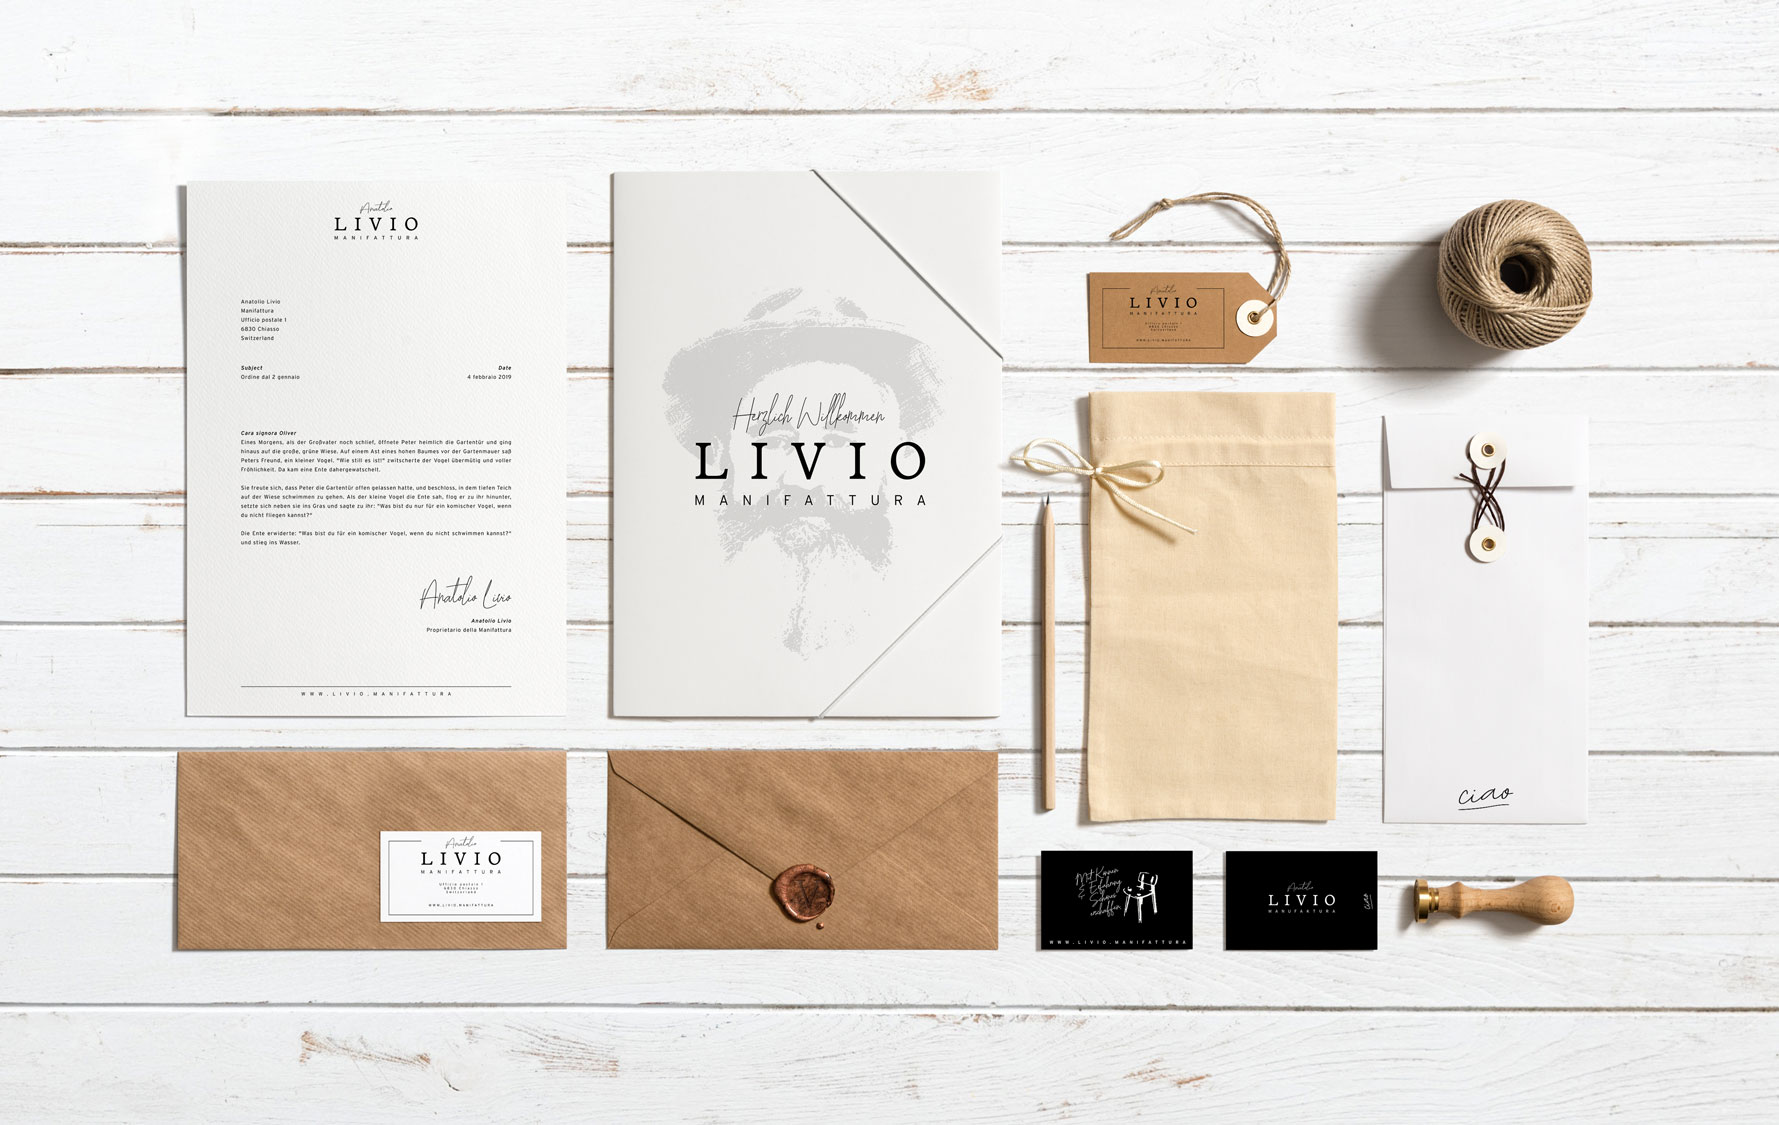 Print Design Letters, Documents and Business Cards KMU Switzerland